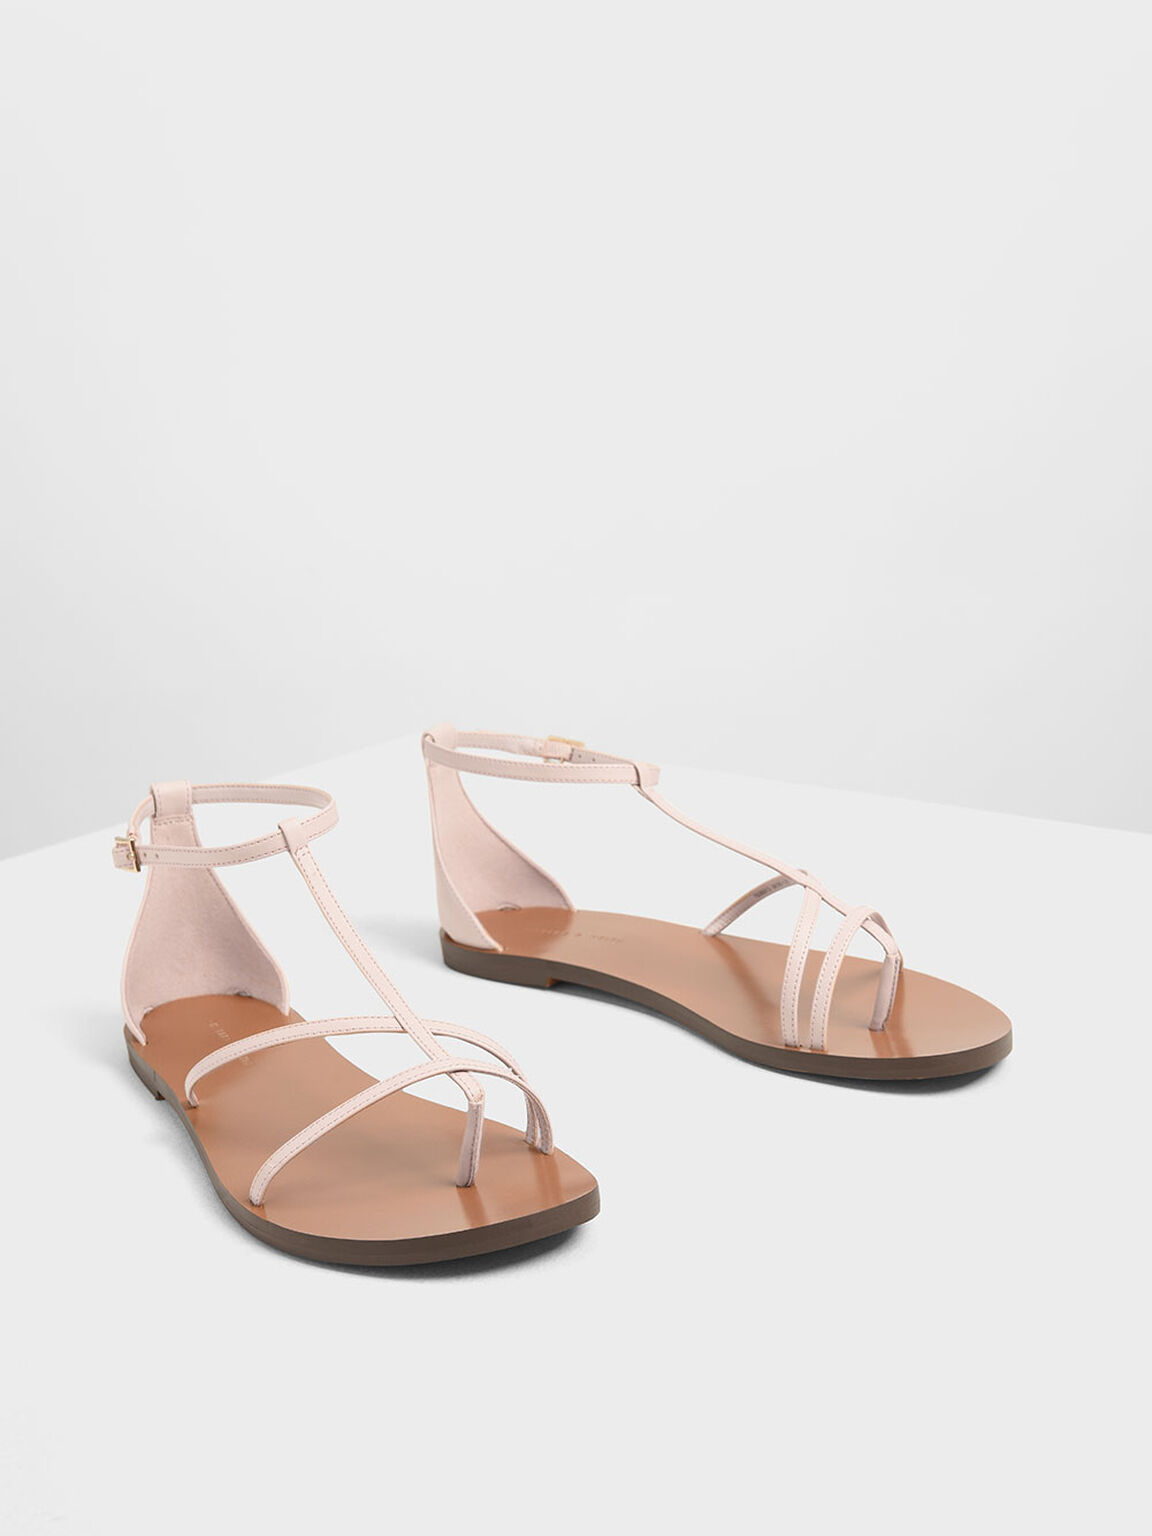 Asymmetrical Strappy Flats, Pink, hi-res